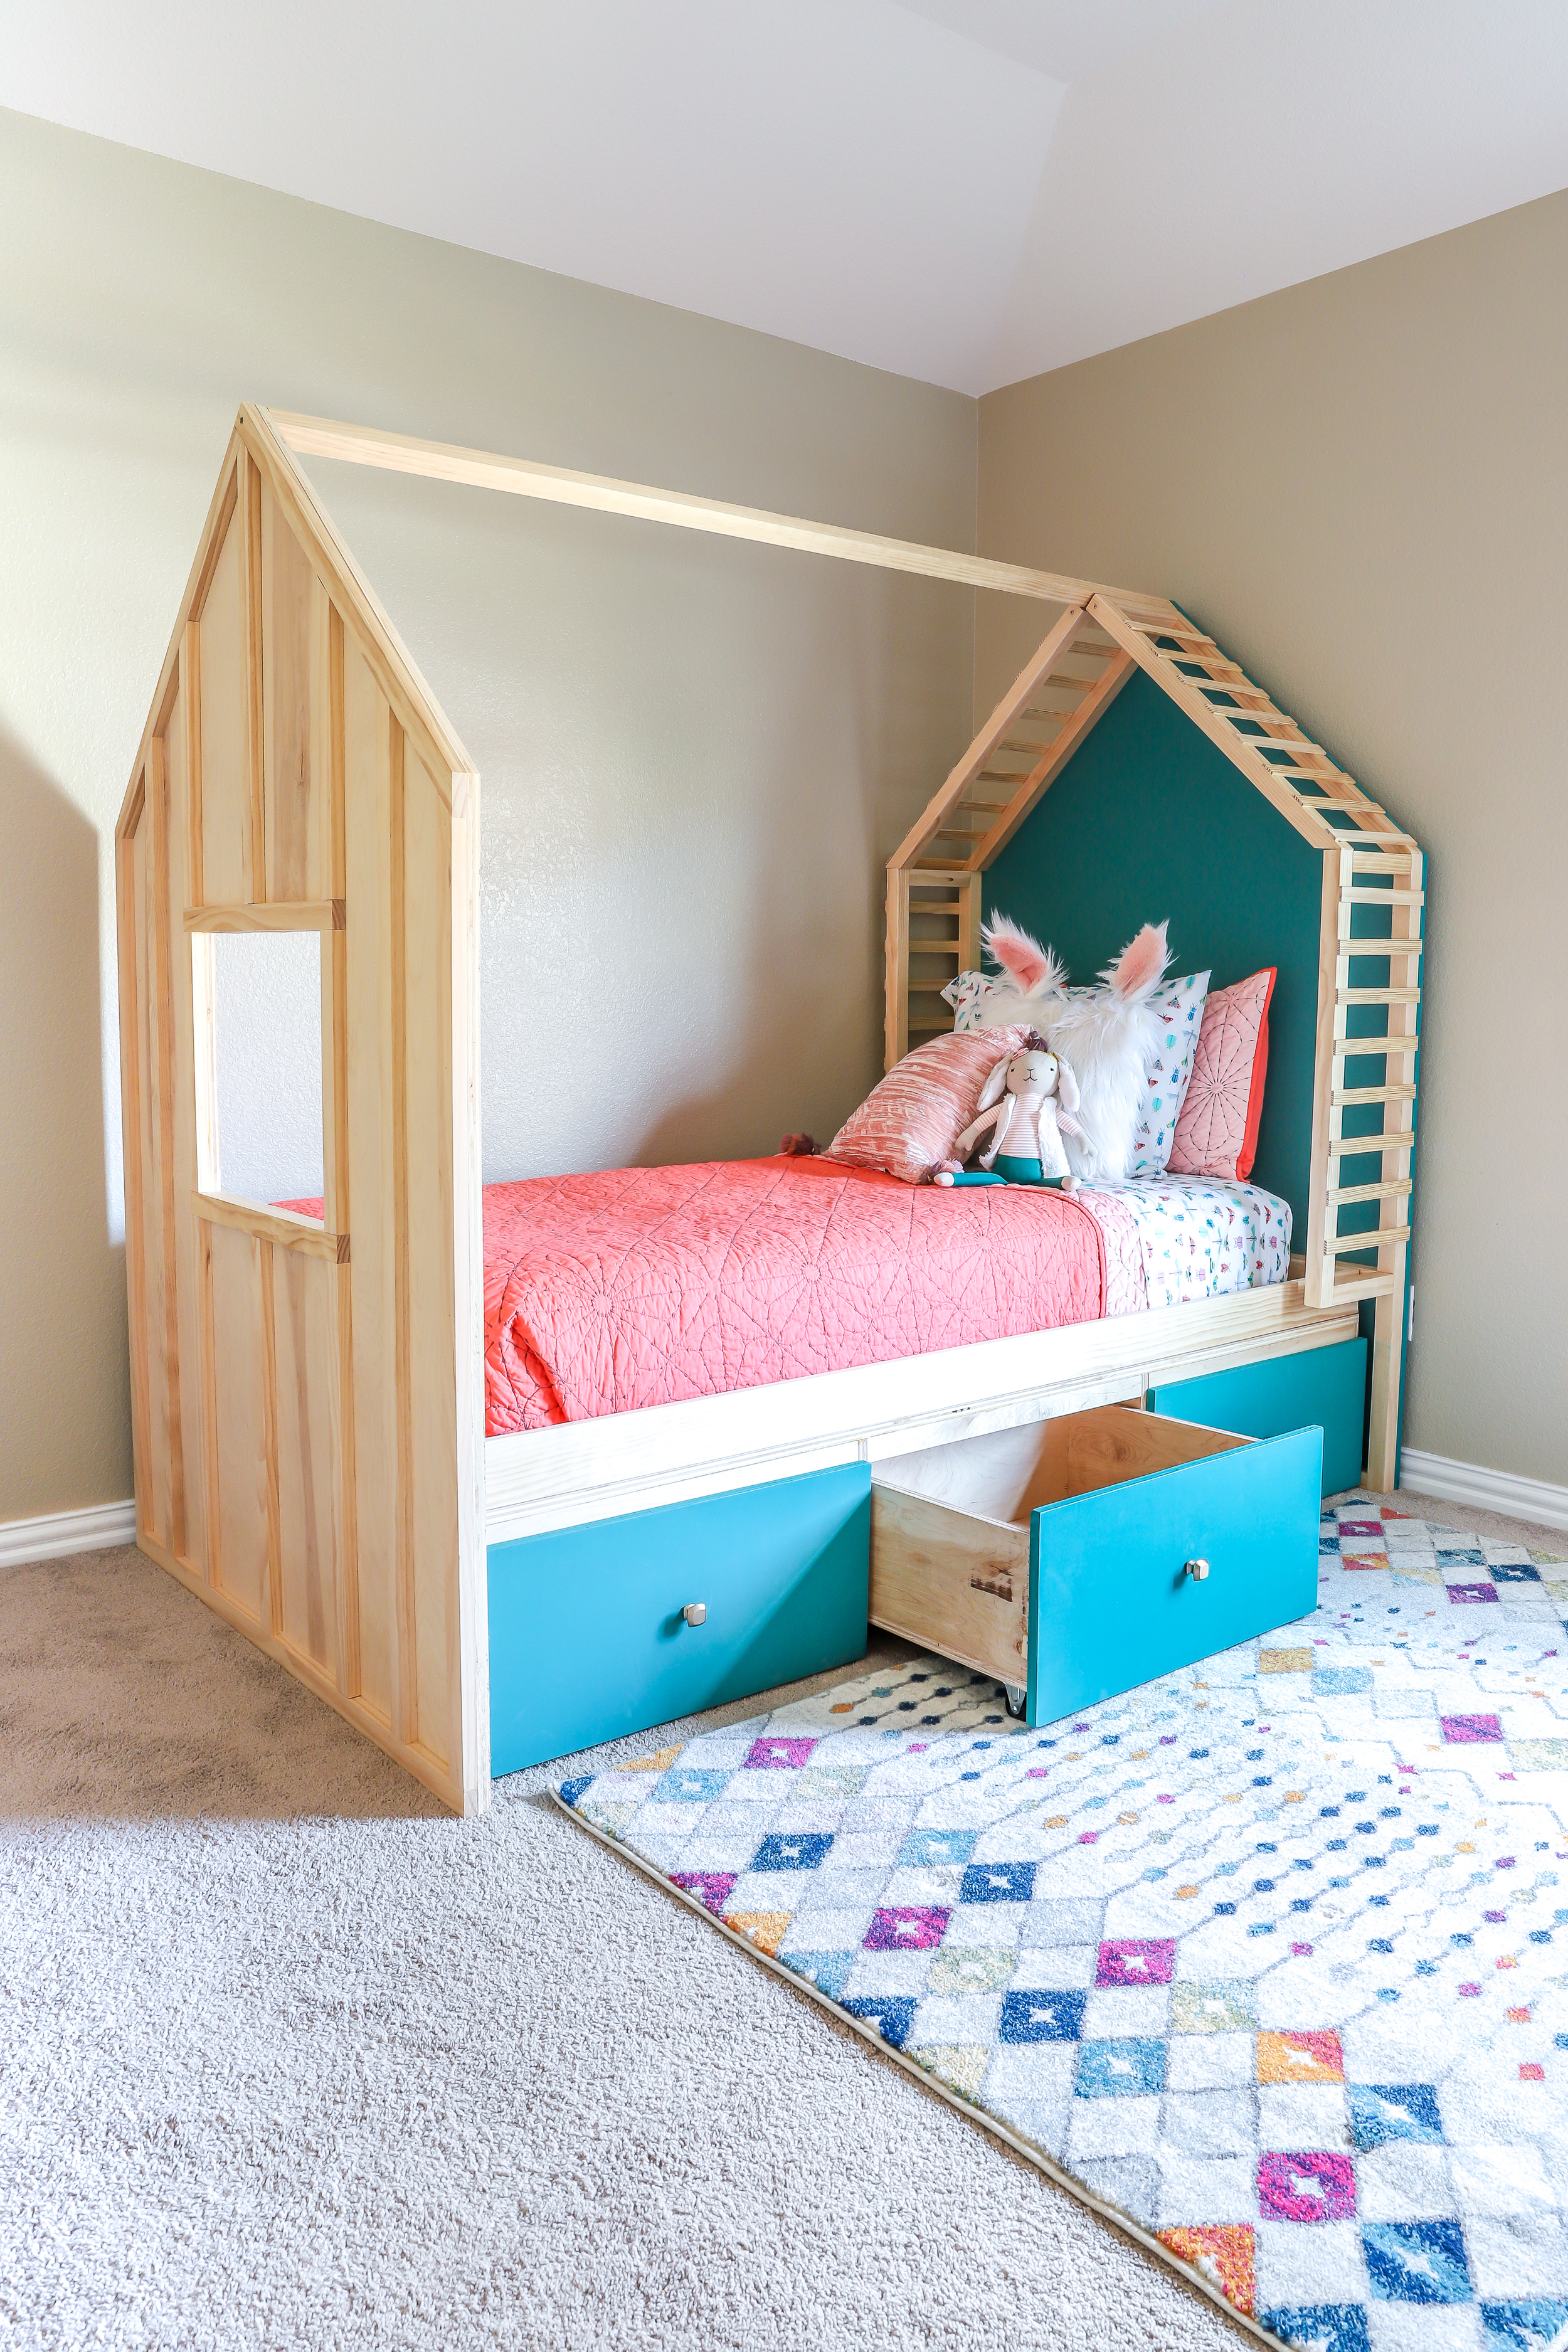 Kids Bed House bed with storage